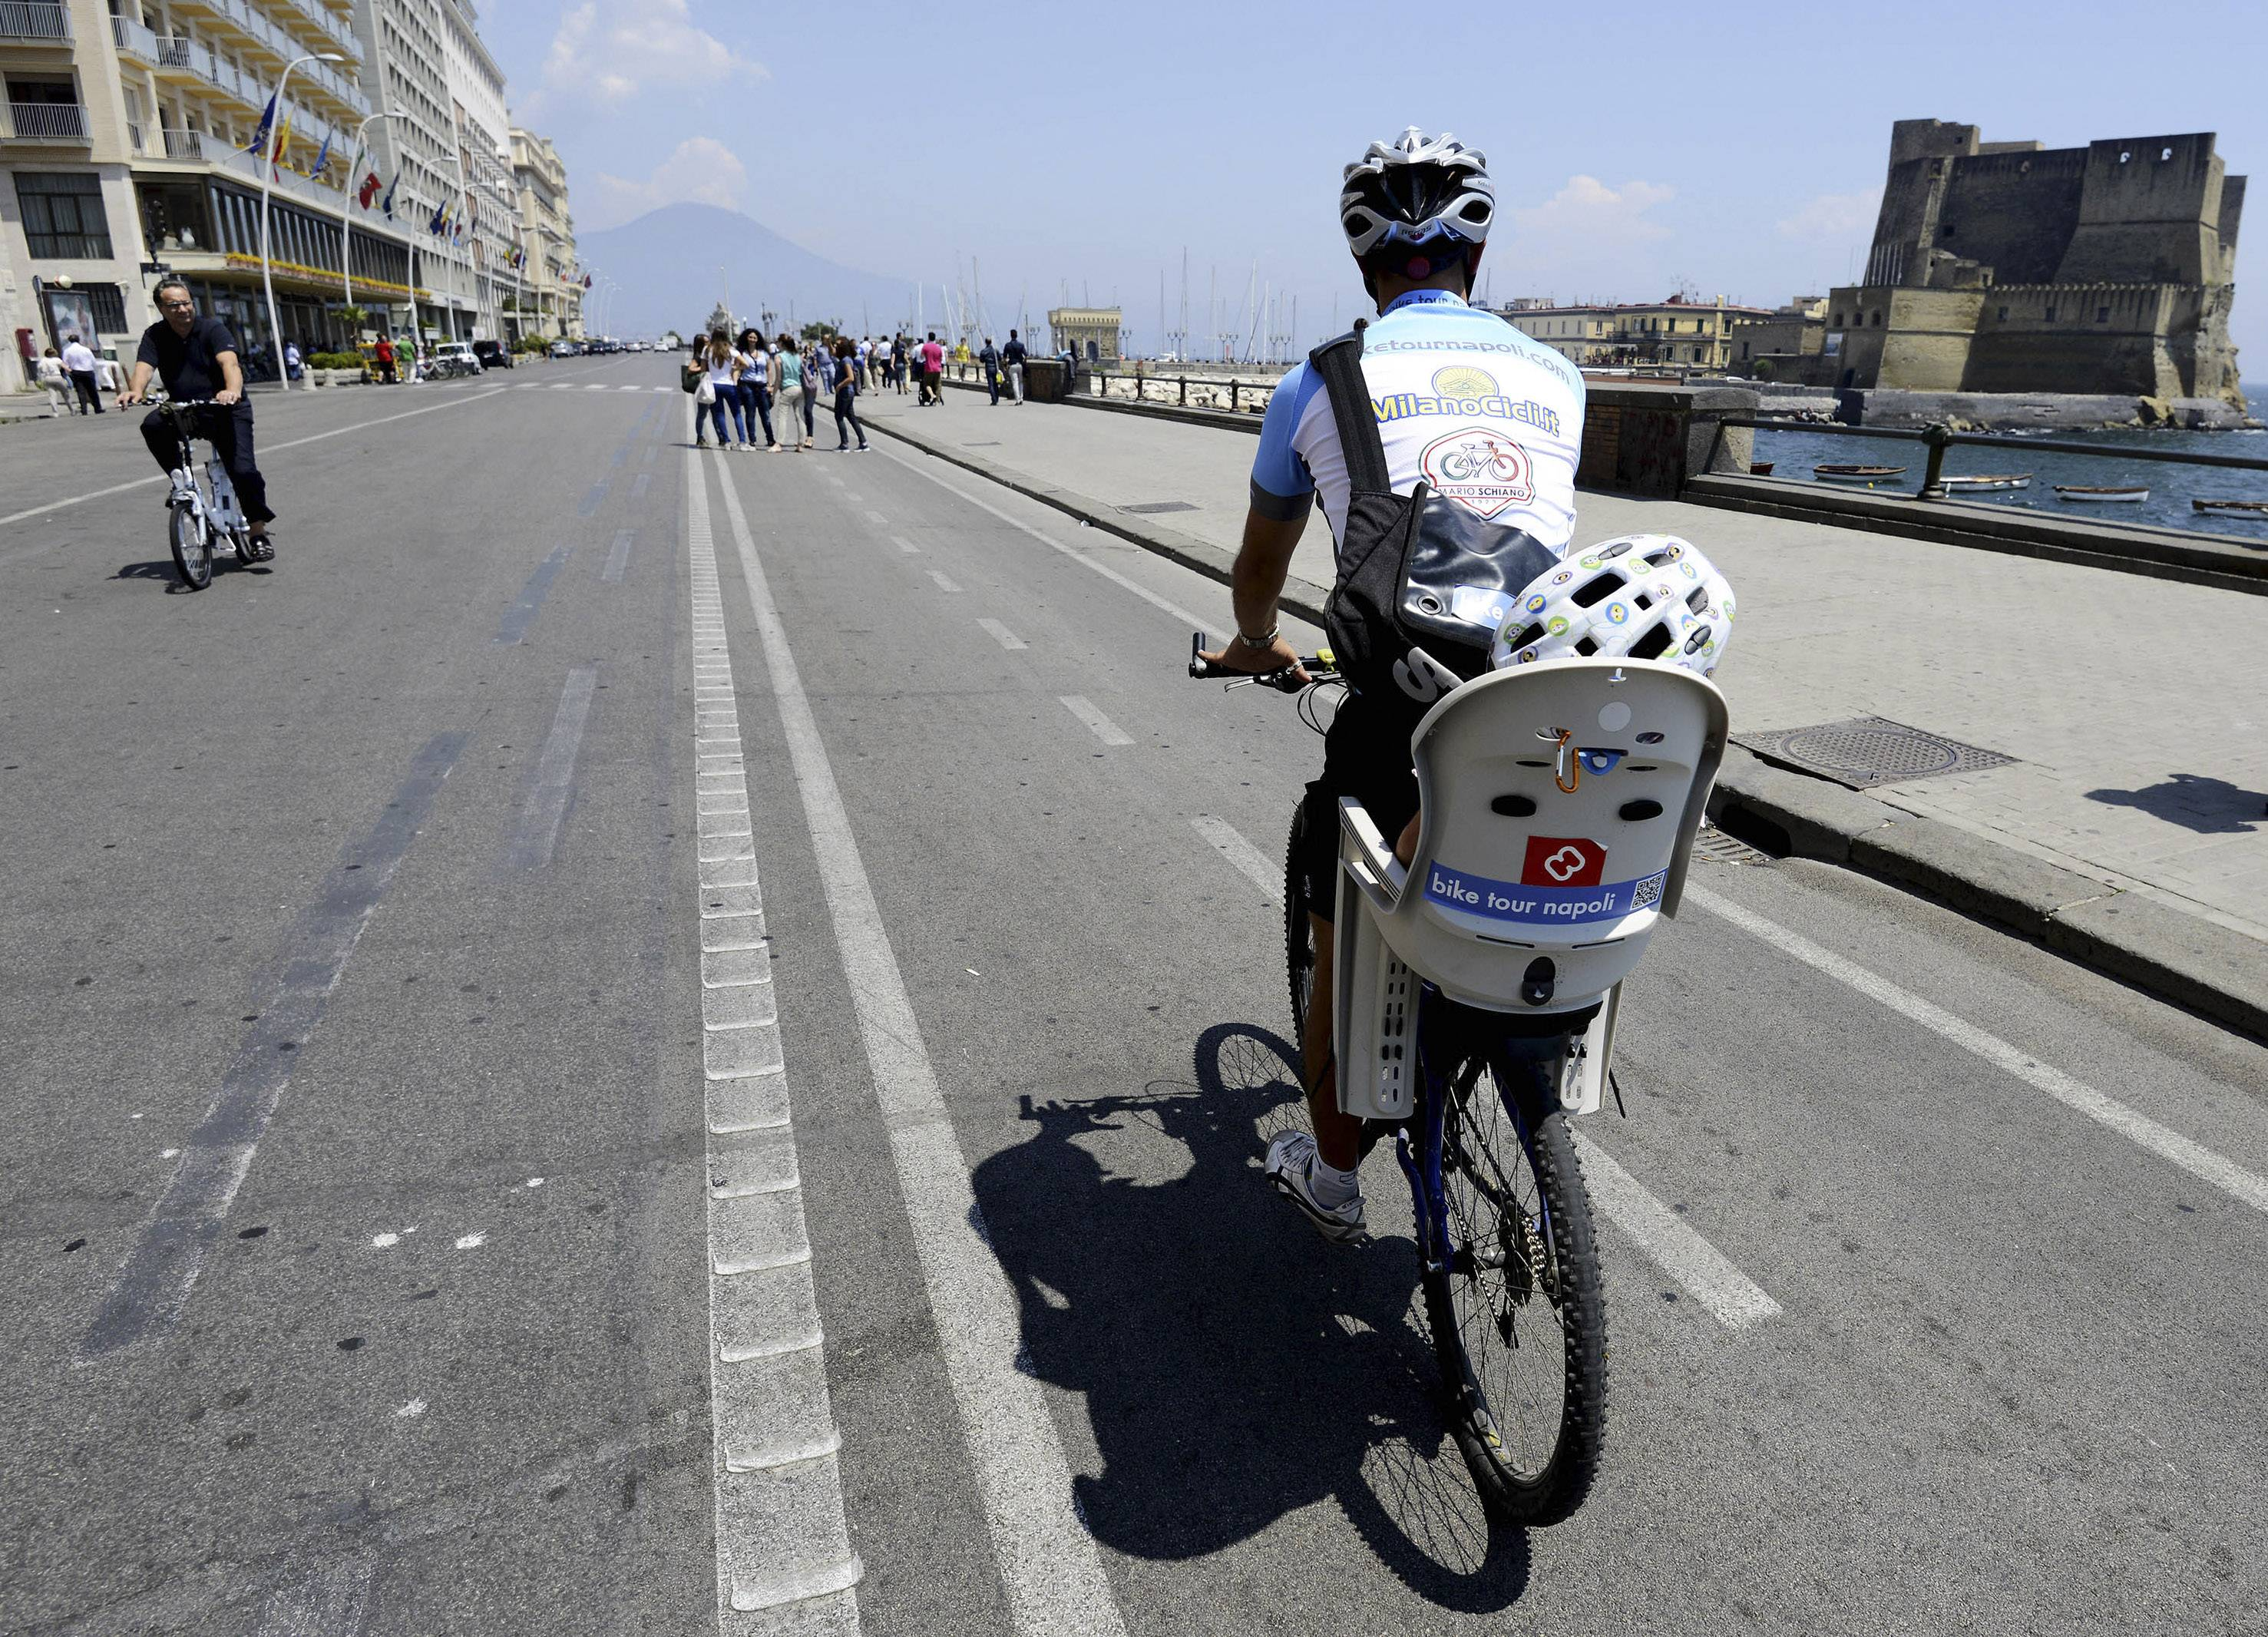 Luca Simeone pedals along a cyclists' path in Naples, Italy.